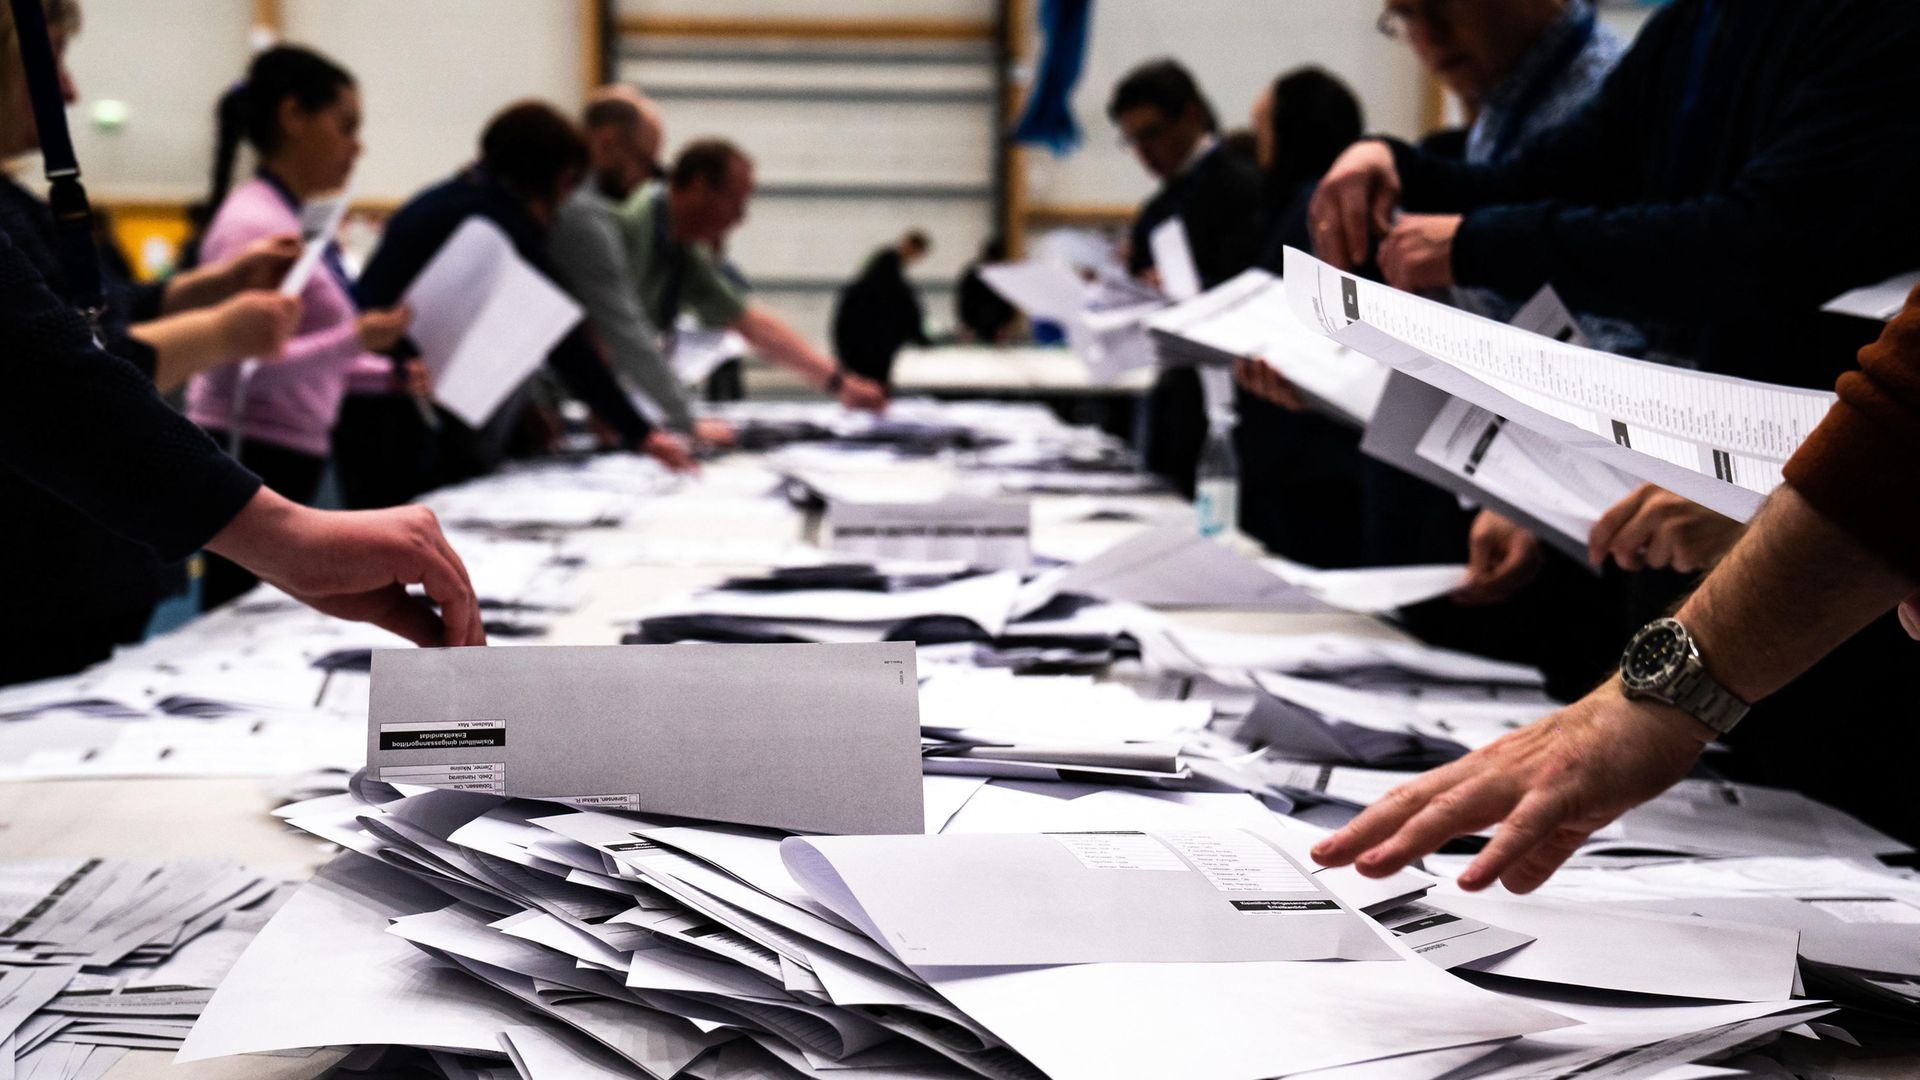 Electoral workers count ballots during elections in Nuuk, Greenland - Credit: Ritzau Scanpix/AFP via Getty Images